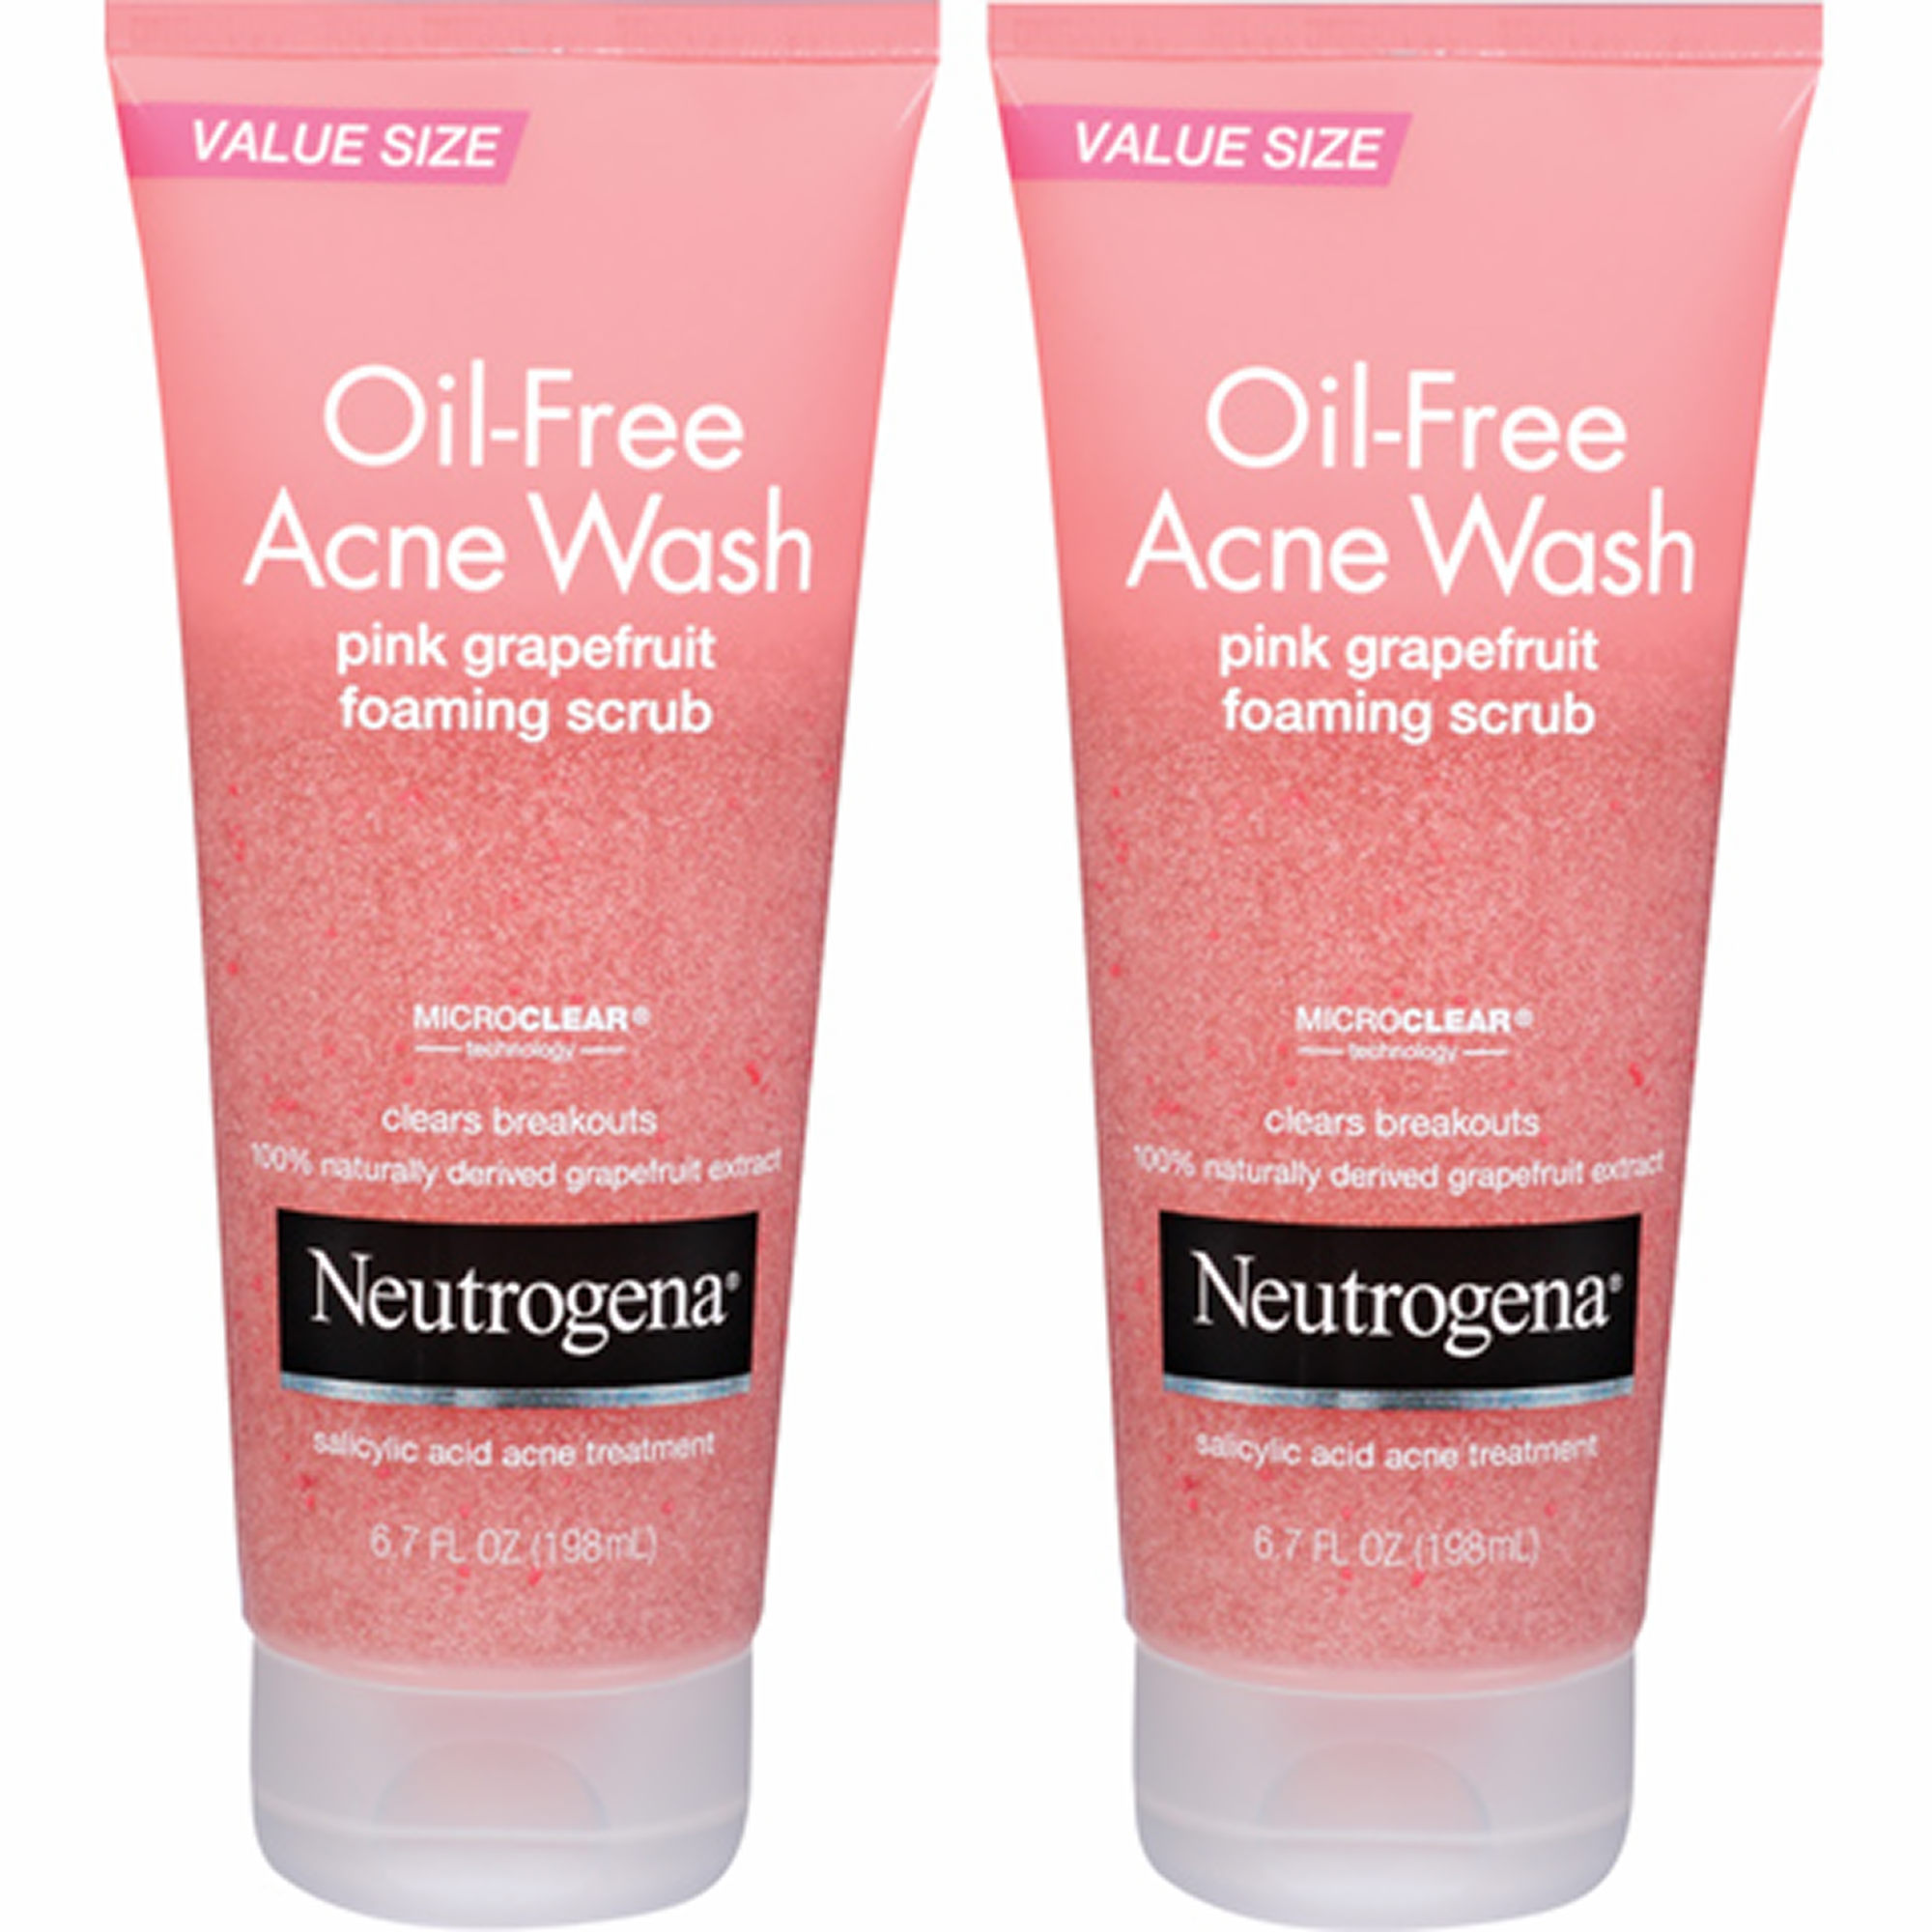 Save $5 on Neutrogena Products at BJ's With These 2 Coupons